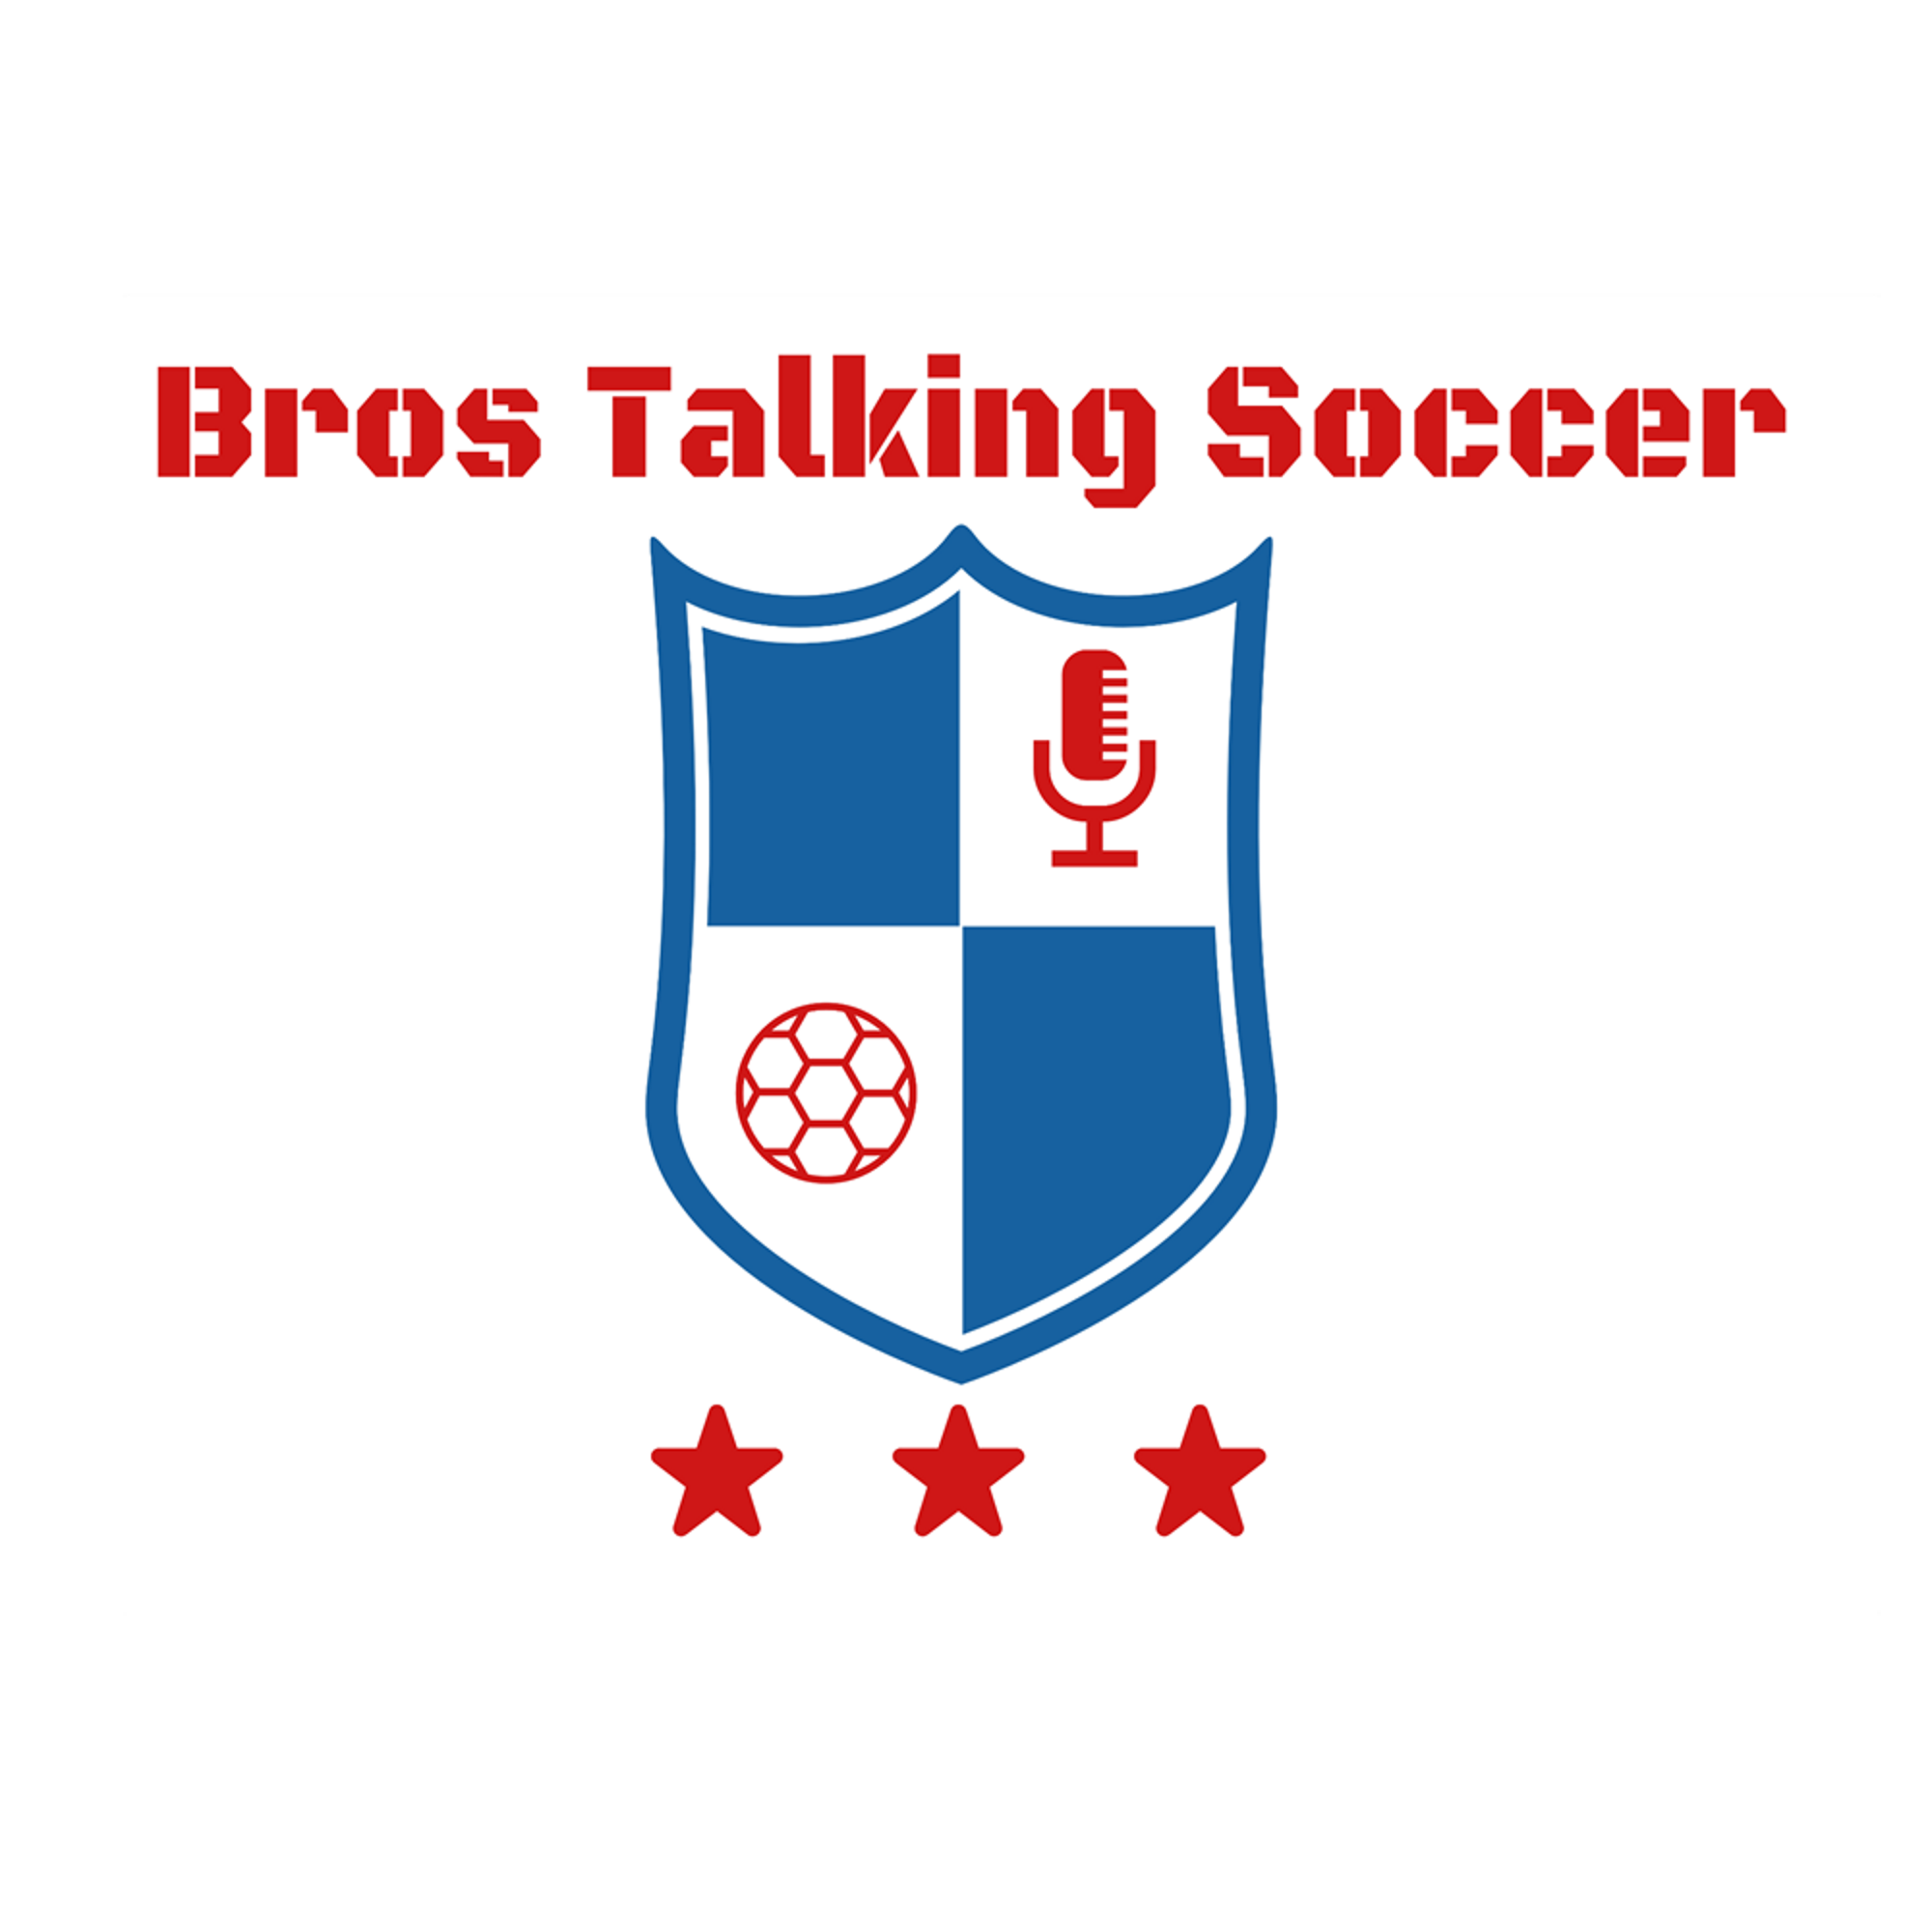 Bros Talking Soccer